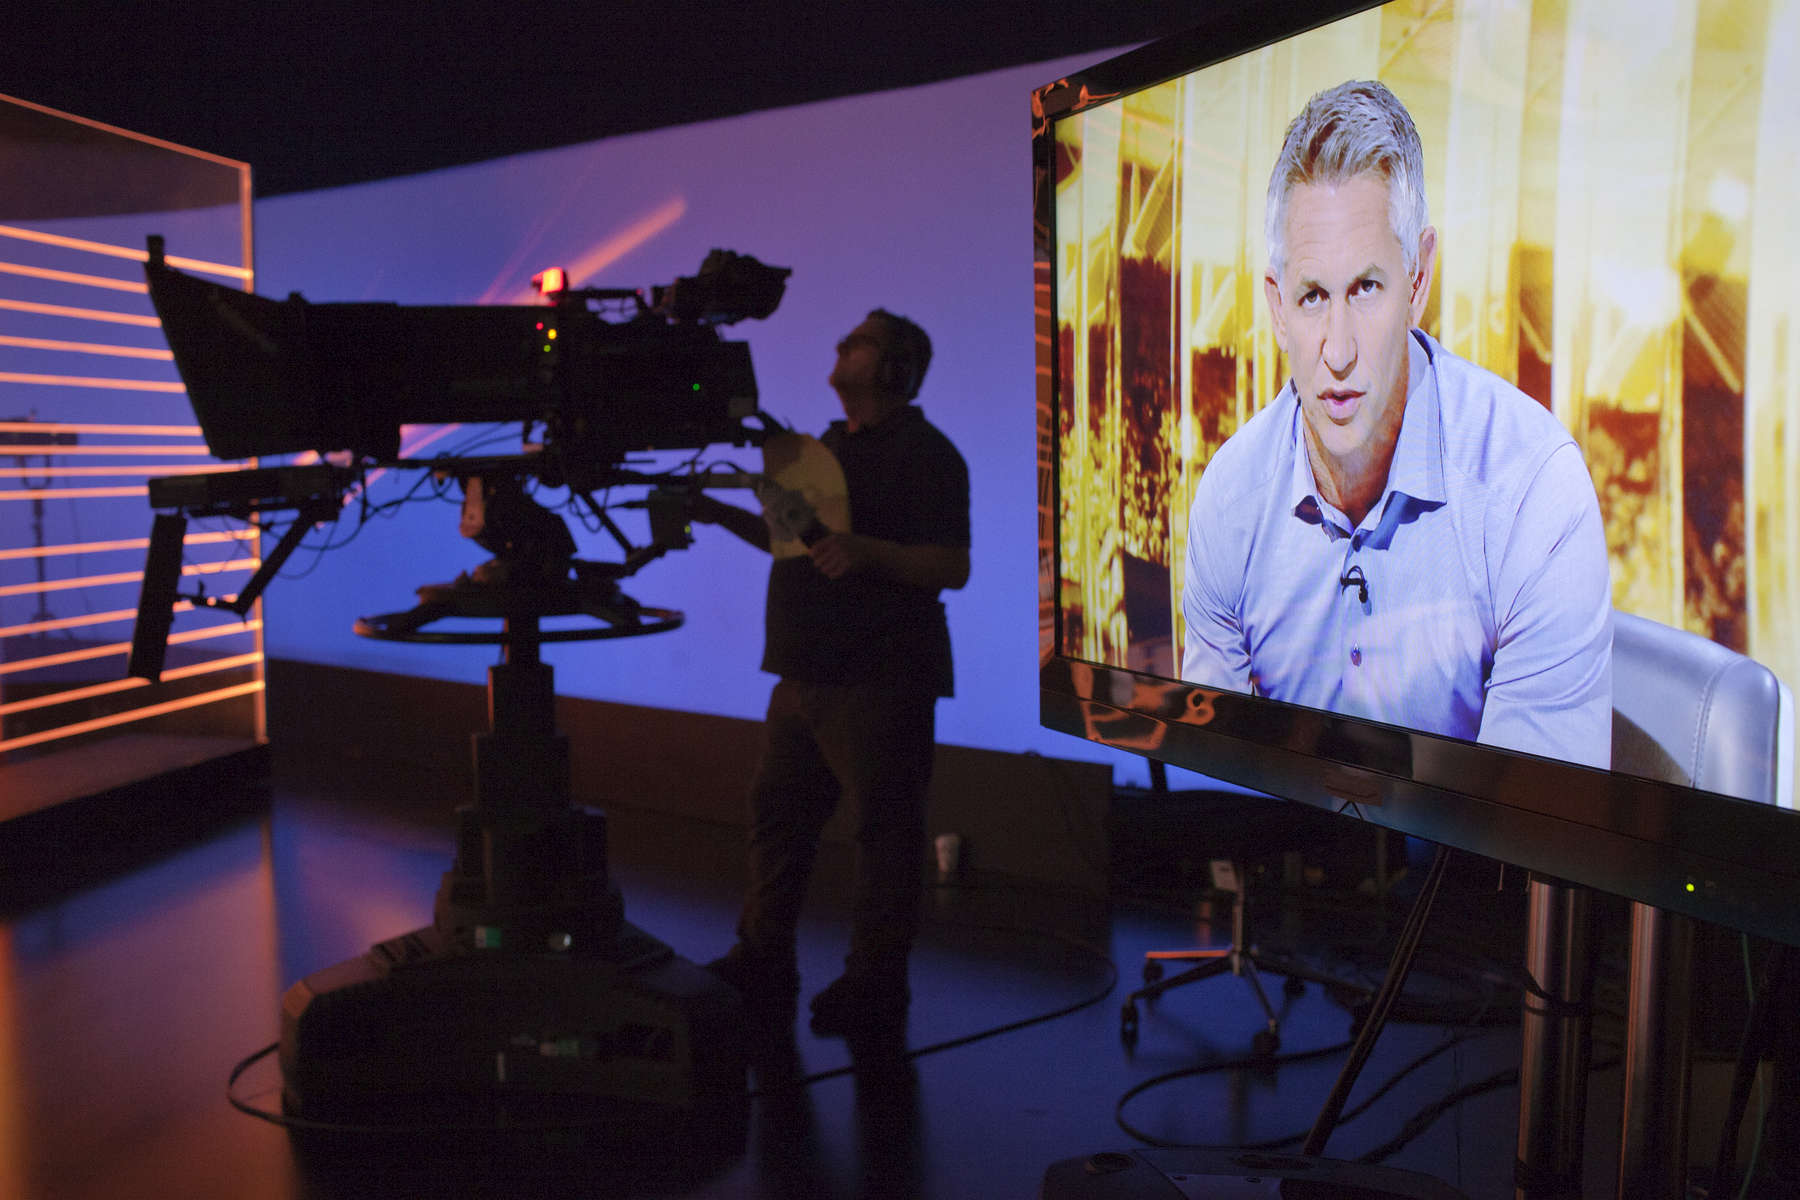 MOTD presenter Gary Lineker rehearses on set.Match of the Day (often abbreviated as MOTD or MotD) is the BBC\'s main football television programme. Typically, it is shown on BBC One on Saturday evenings during the English football season, showing highlights of the day\'s matches in English football\'s top division, the Premier League. It is one of the BBC\'s longest-running shows, having been on air since 22 August 1964, though it has not always been aired regularly. The programme is broadcast from MediaCityUK in Salford Quays on the banks of the Manchester Ship Canal in Greater Manchester.Since 1999 MOTD has been presented by the former England captain Gary Lineker. Lineker is usually joined by two pundits to analyse and review the day\'s action. The former Newcastle United captain Alan Shearer is the lead pundit